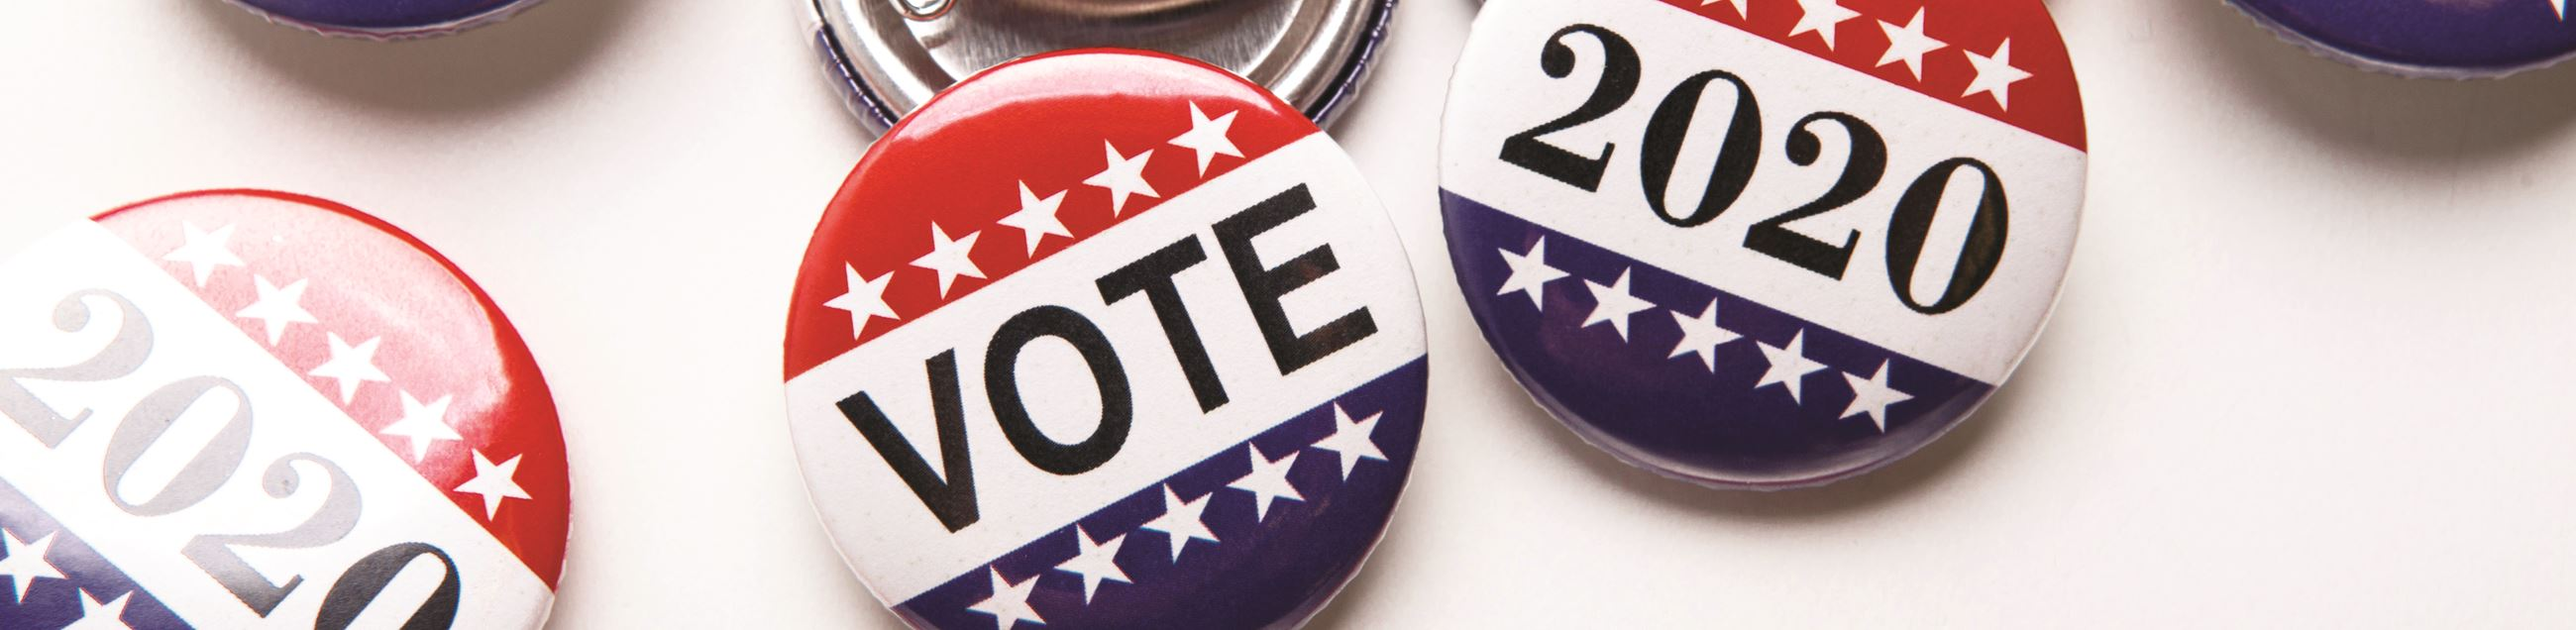 Click here to find important 2020 election dates and information.